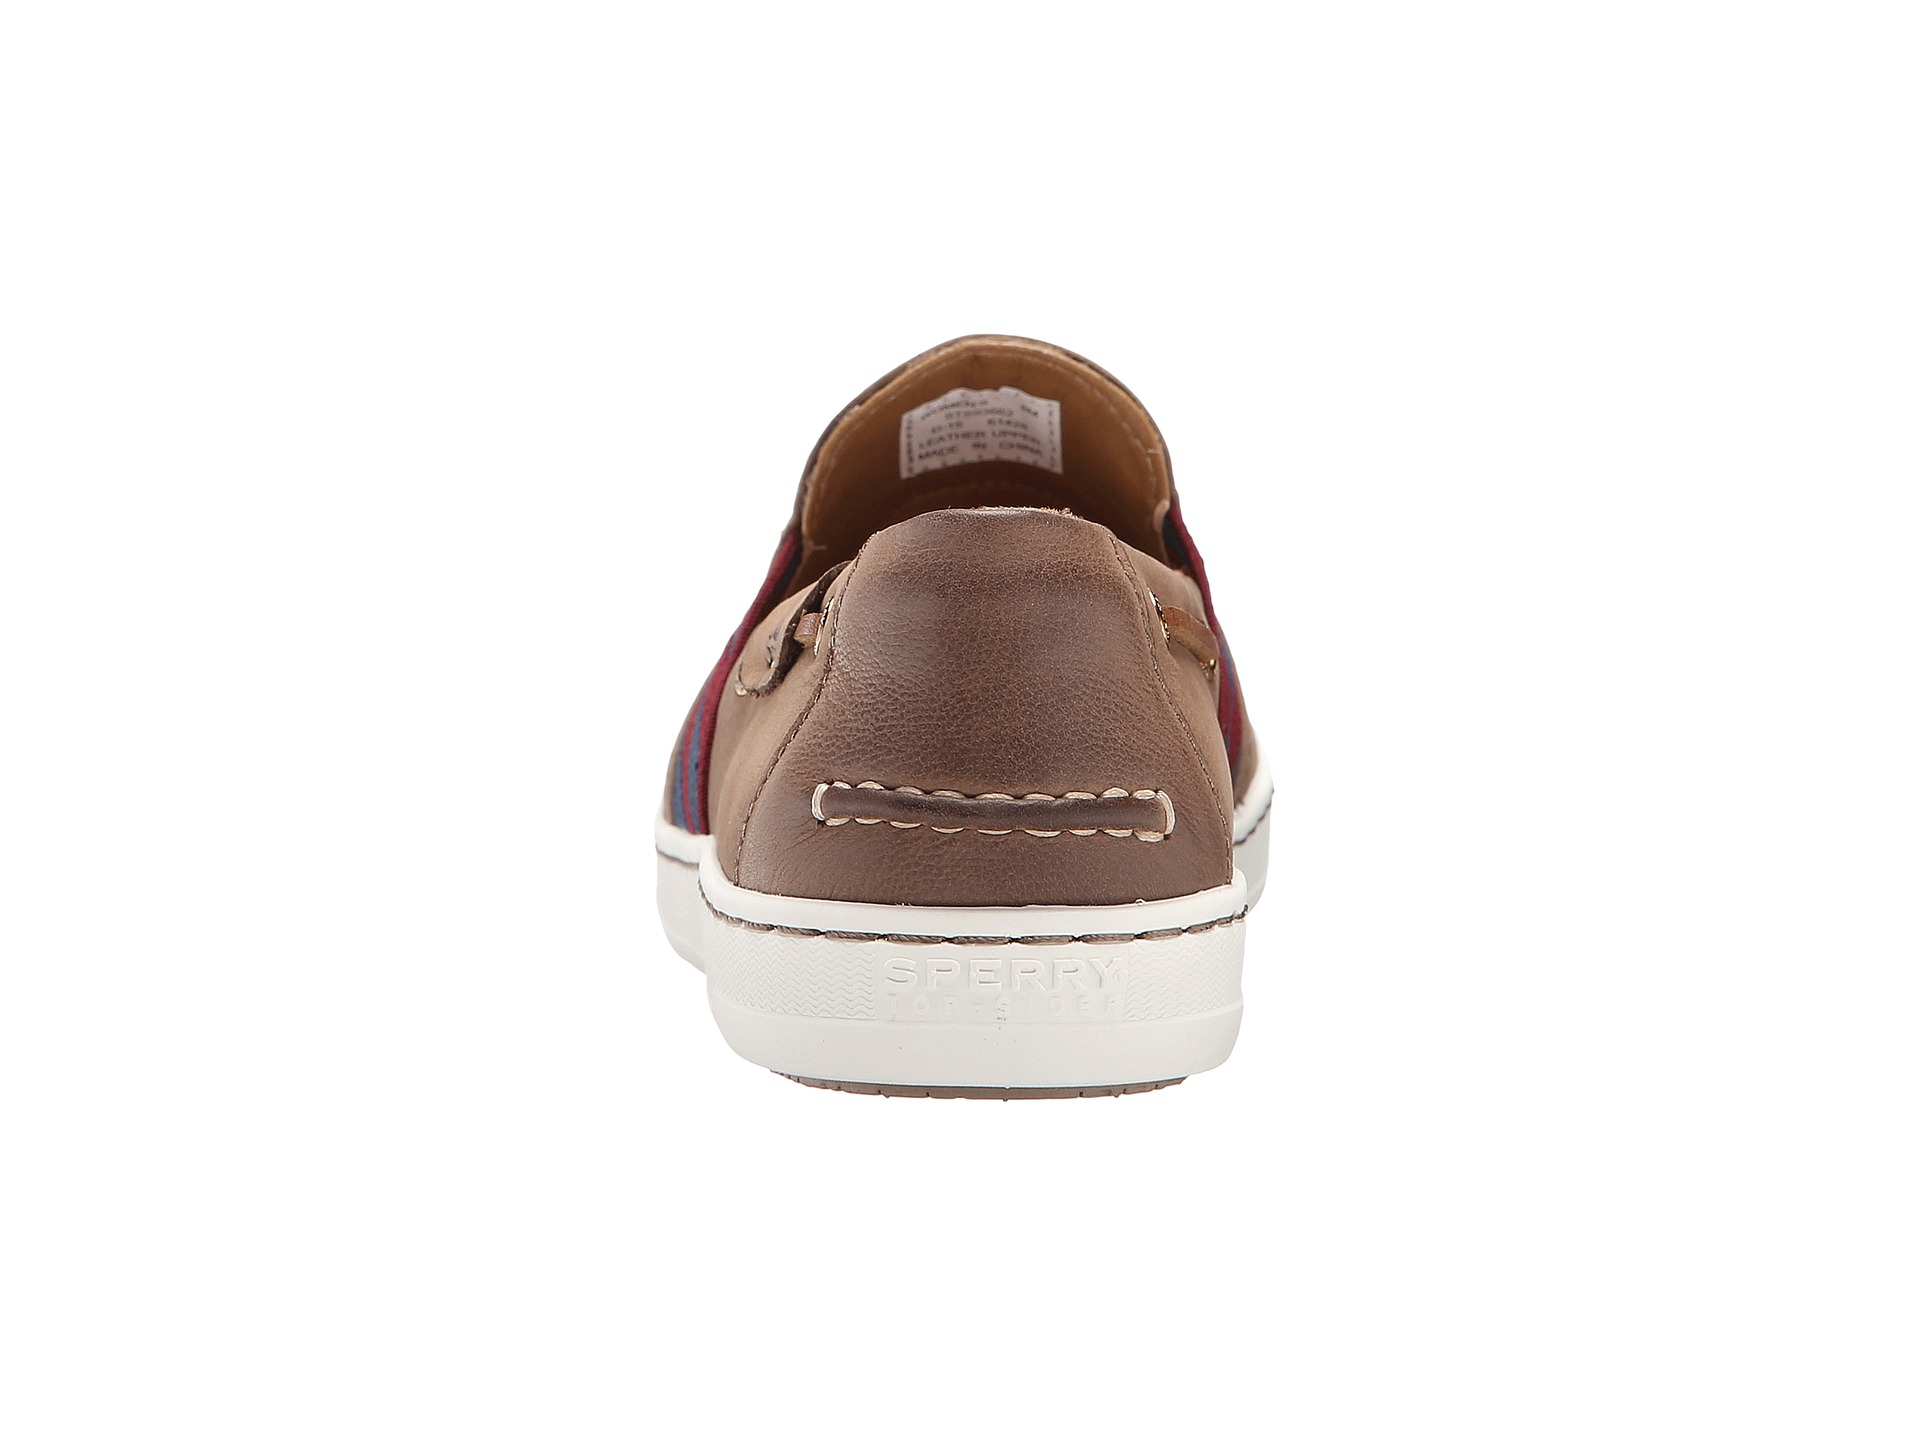 harbor view women Sperry - harbor view slip-on sneaker is now 45% off free shipping on orders over $100.